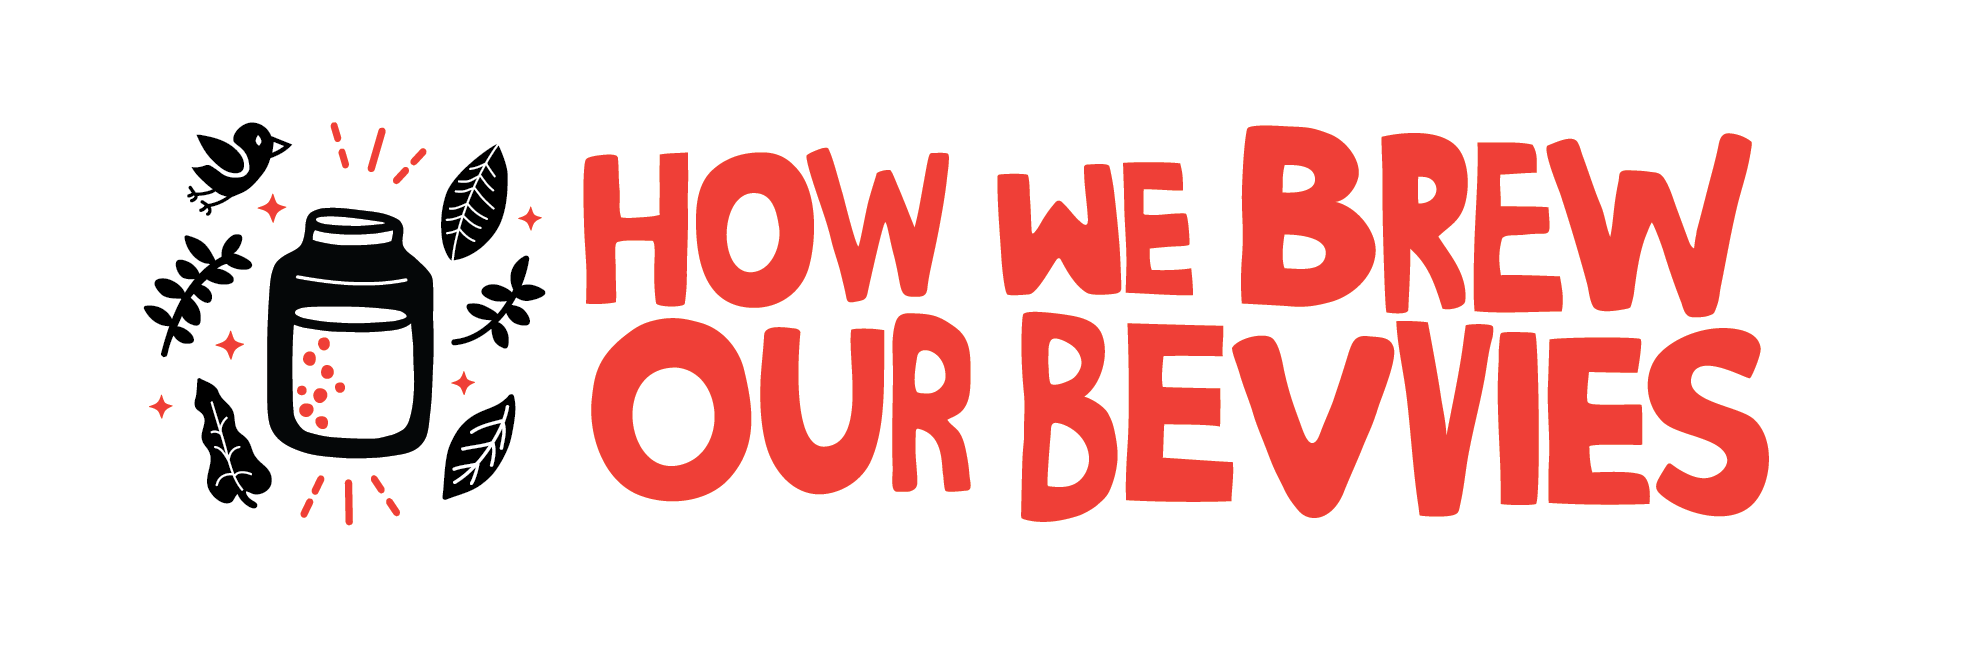 Remedy Drinks | How We Brew Our Bevvies